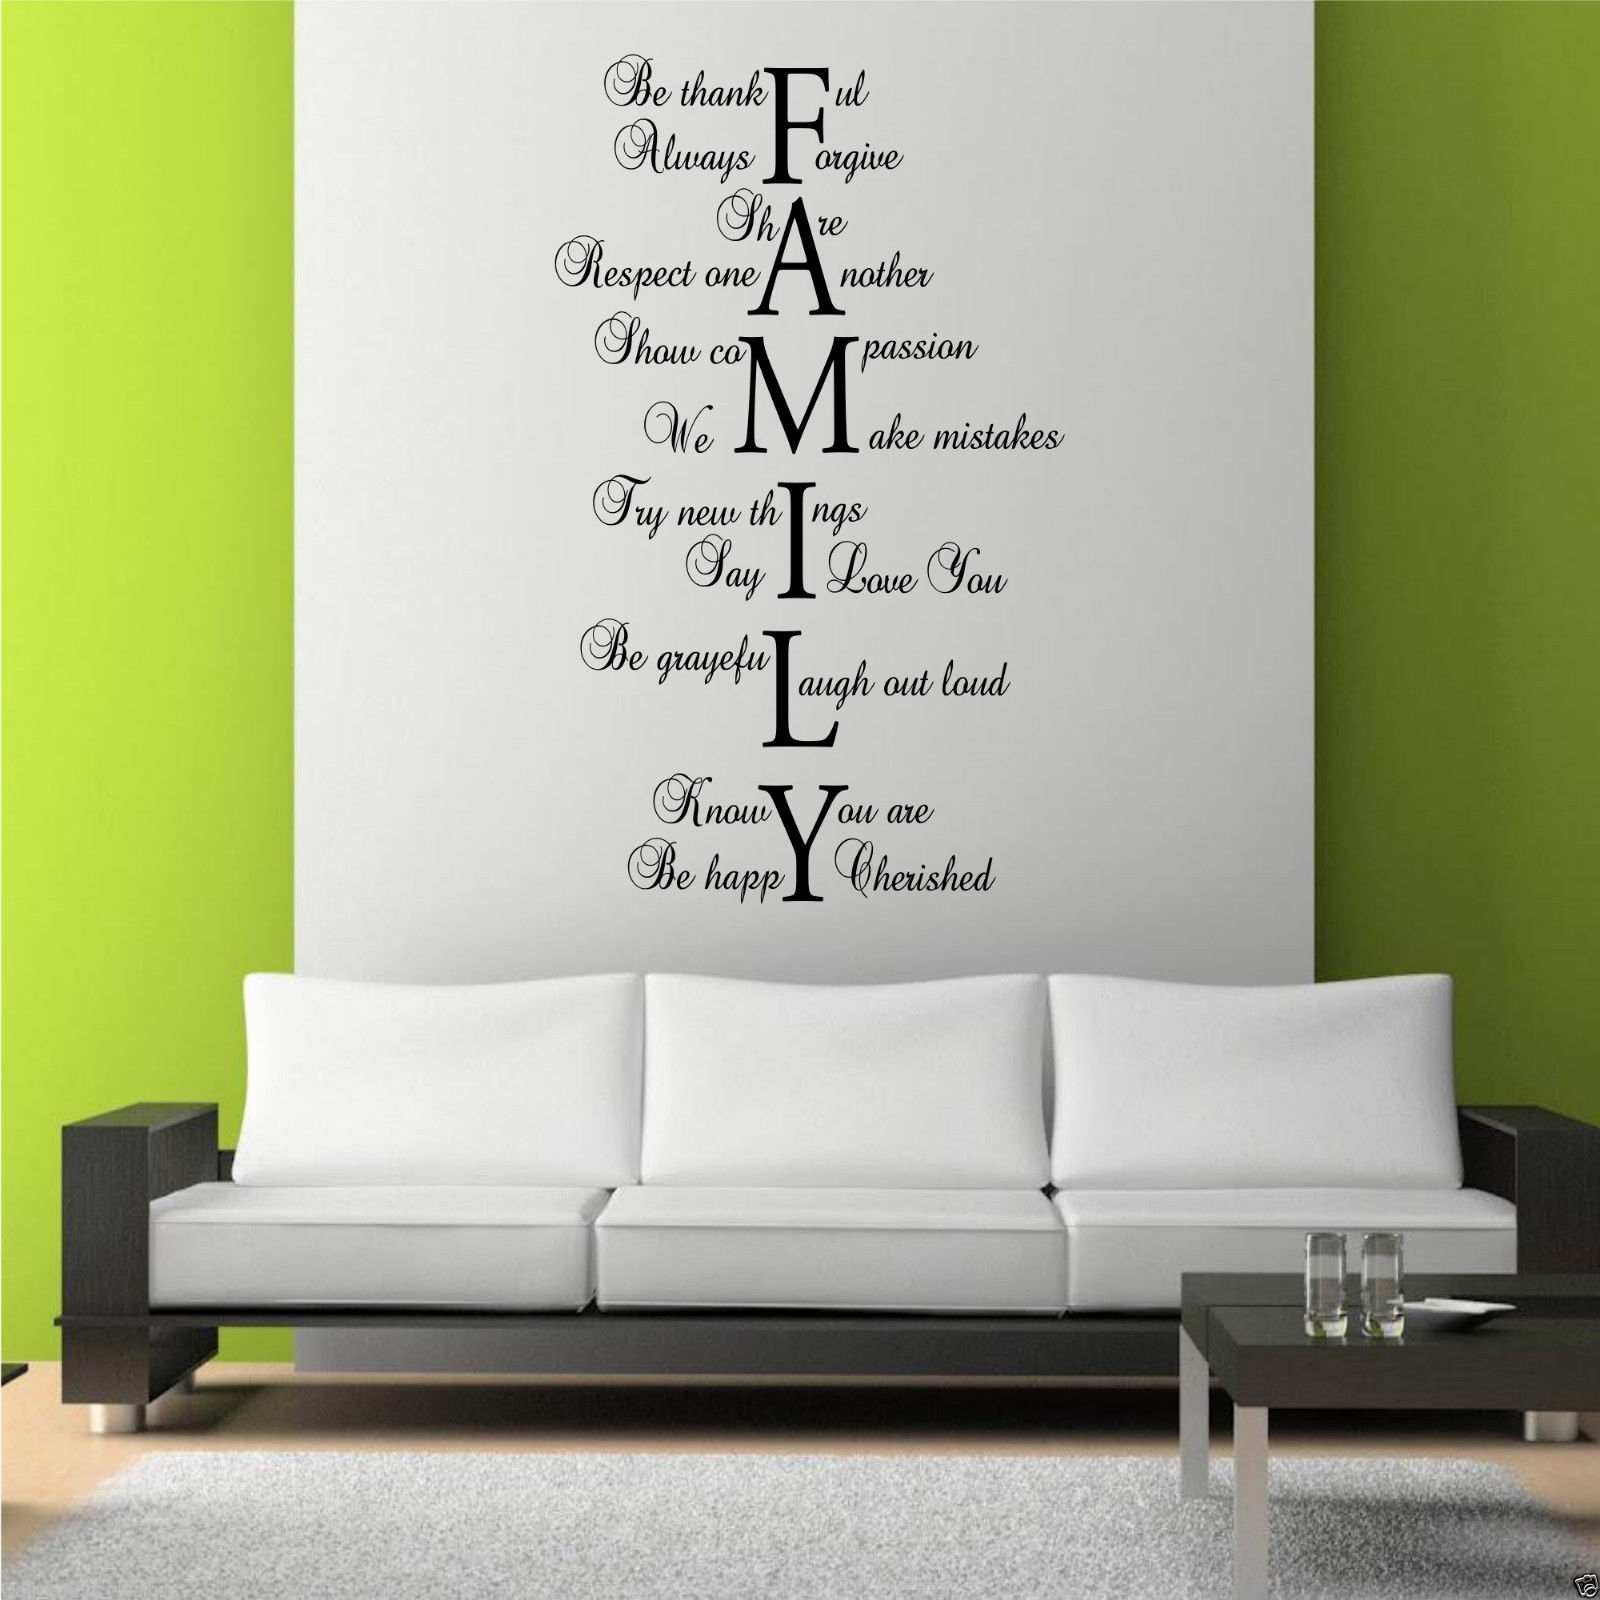 B Awesome Www Wall Cool Www Wall Art Stickers – Wall Decoration Ideas For Best And Newest Wall Art Stickers (Gallery 8 of 15)